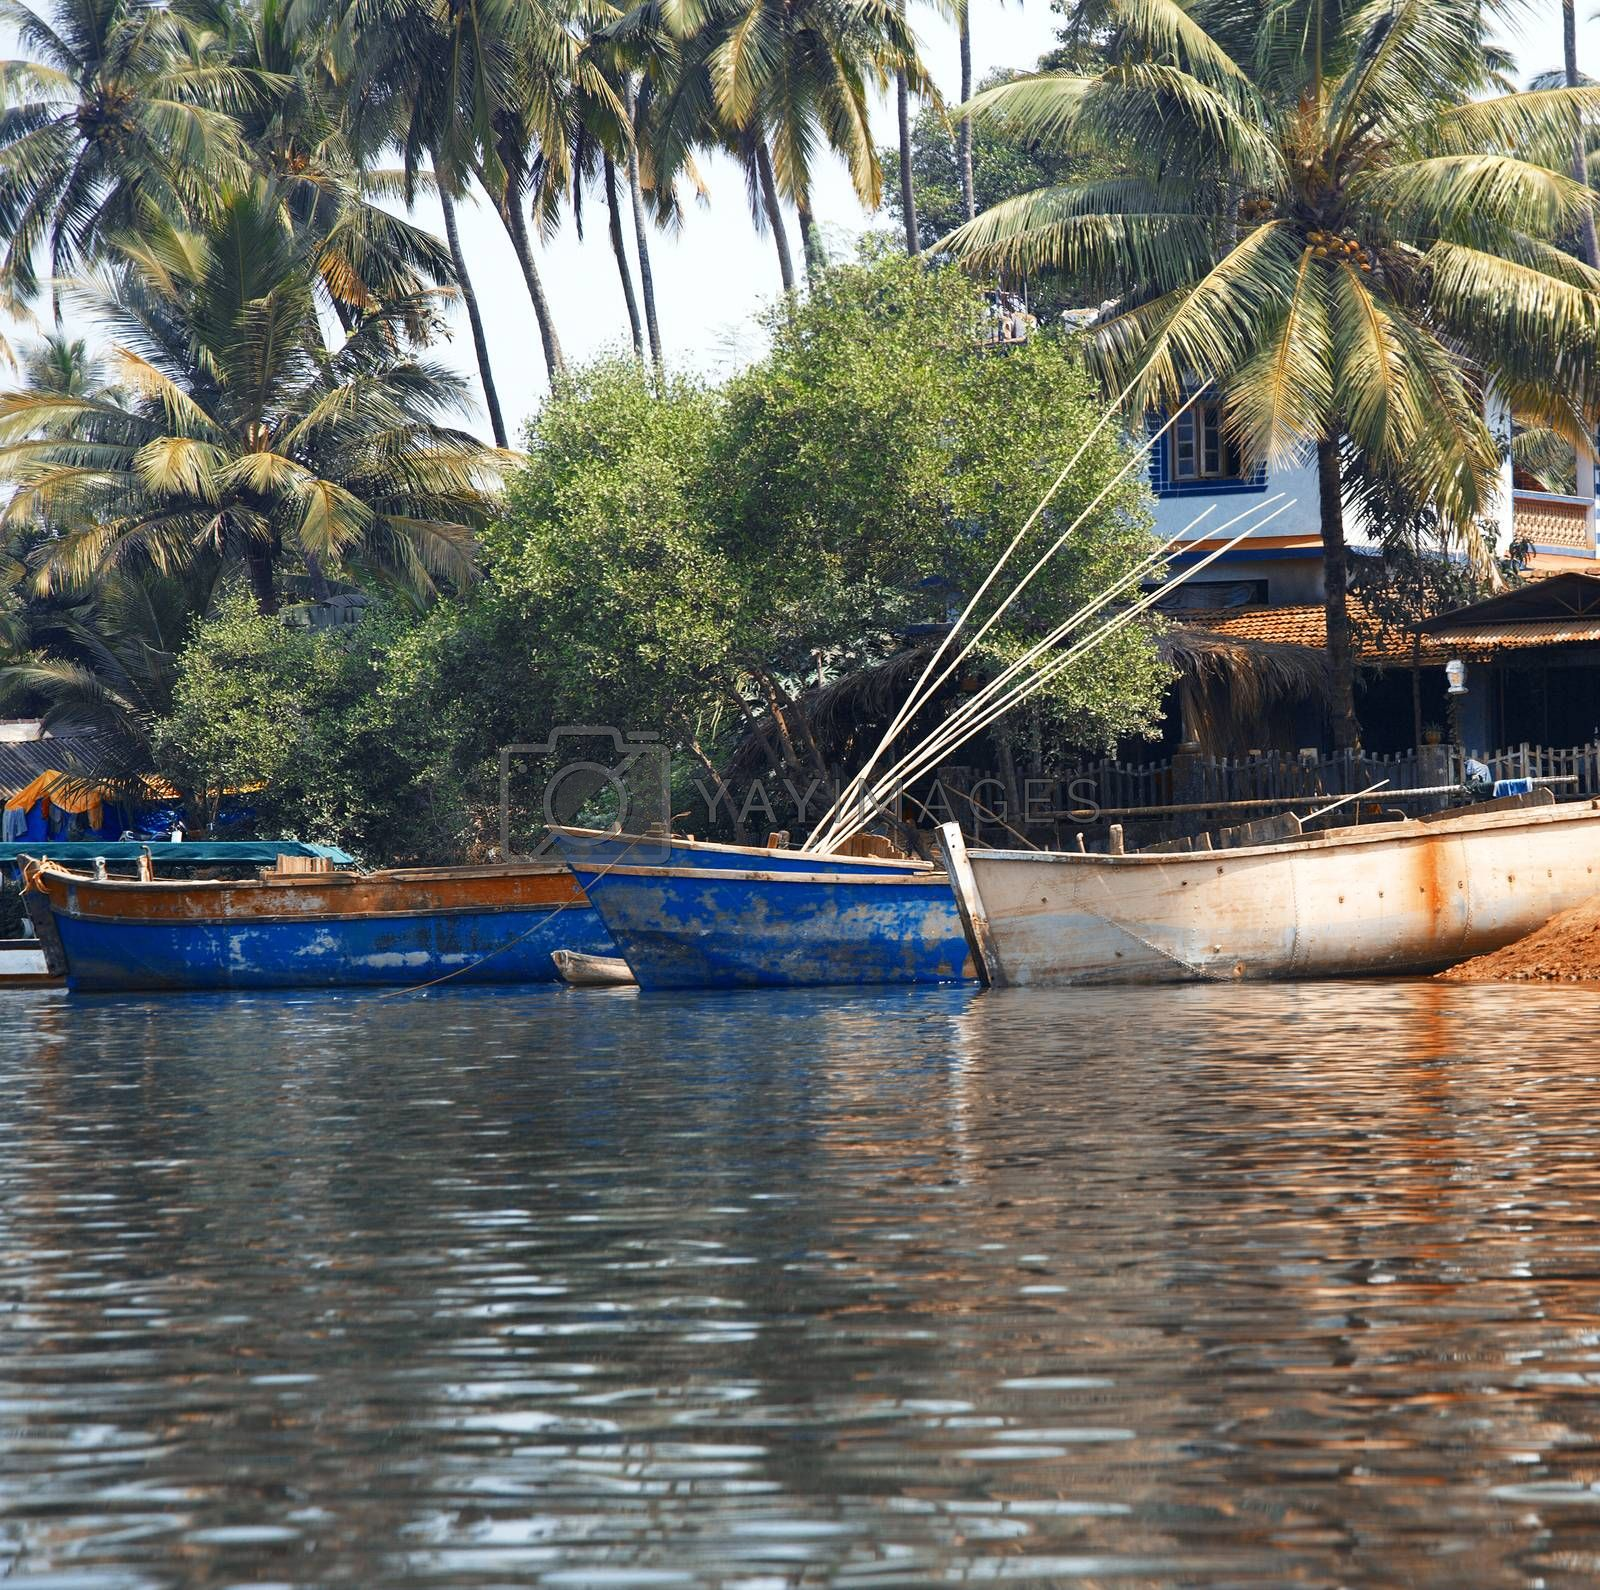 Fishing boats at the pier in palm jungles. Goa, India